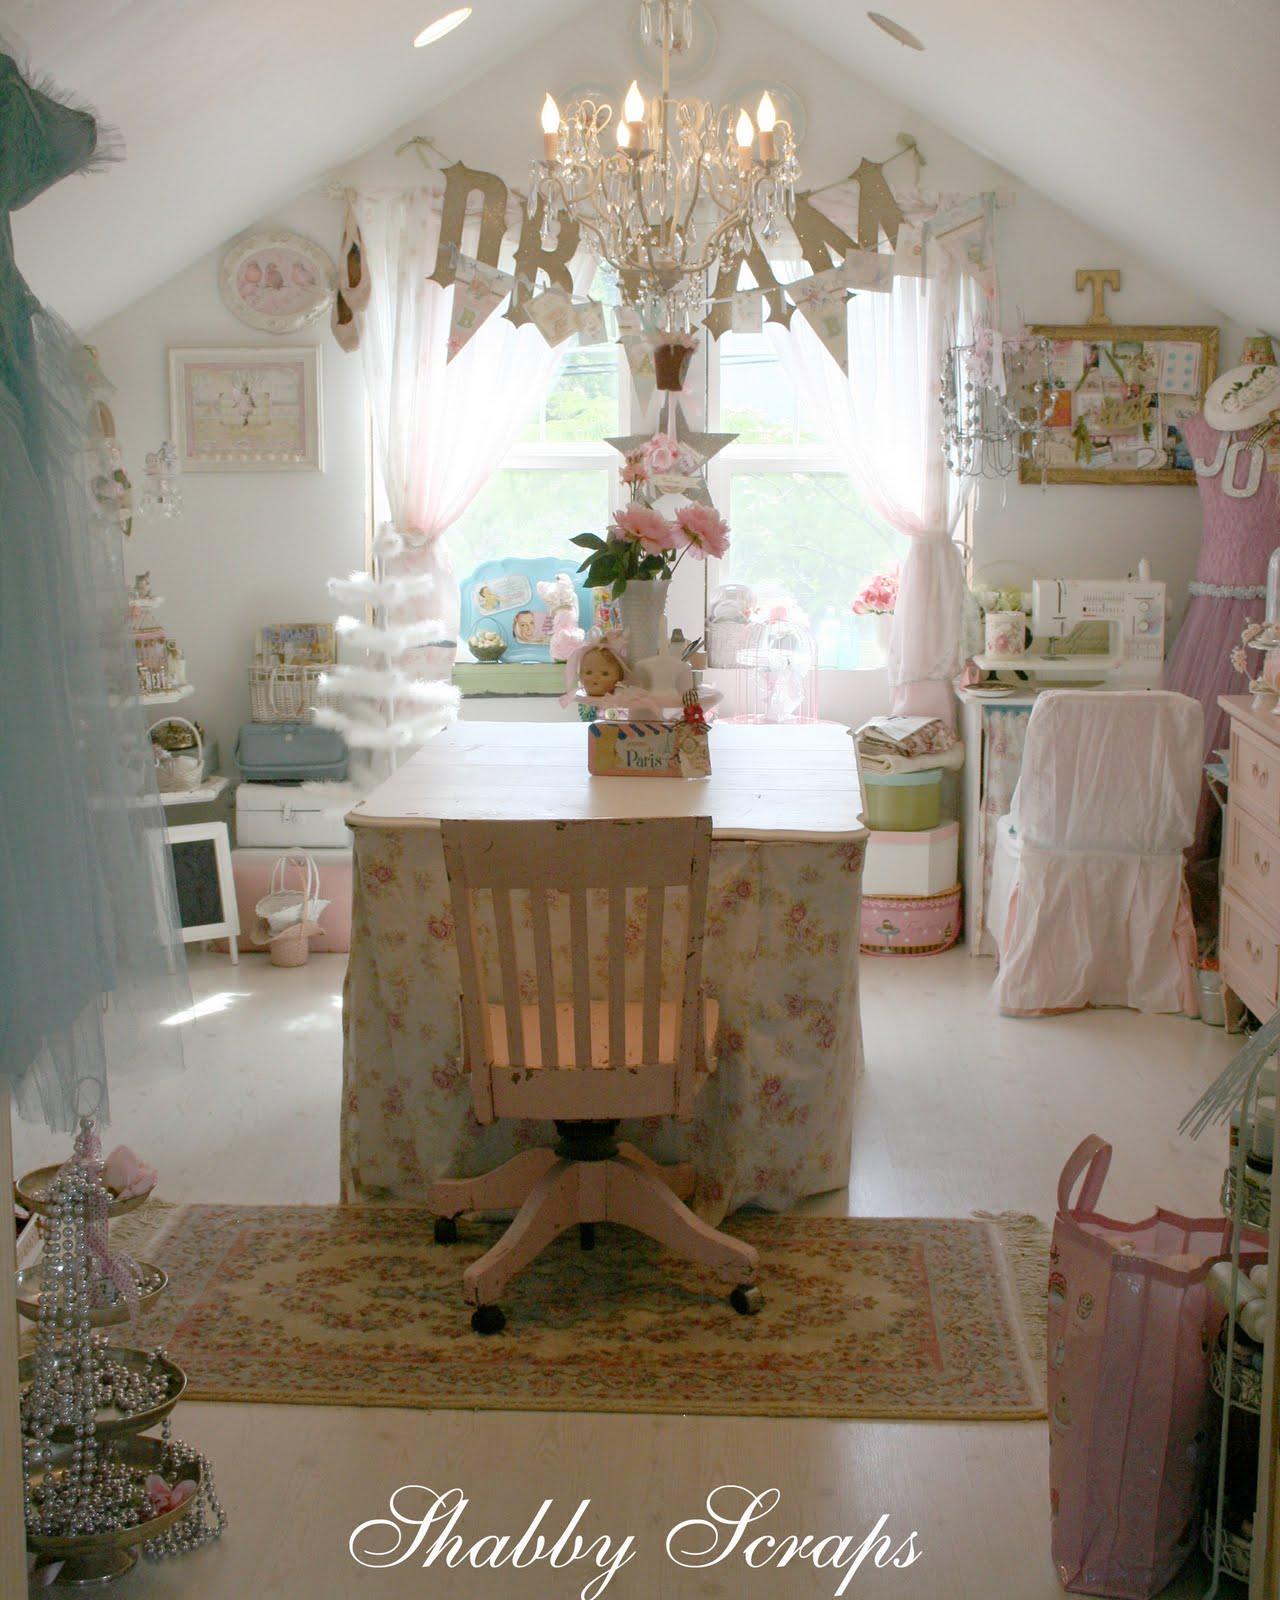 Shabby Chic Bedrooms: Shabby Chic Lofts And Attics